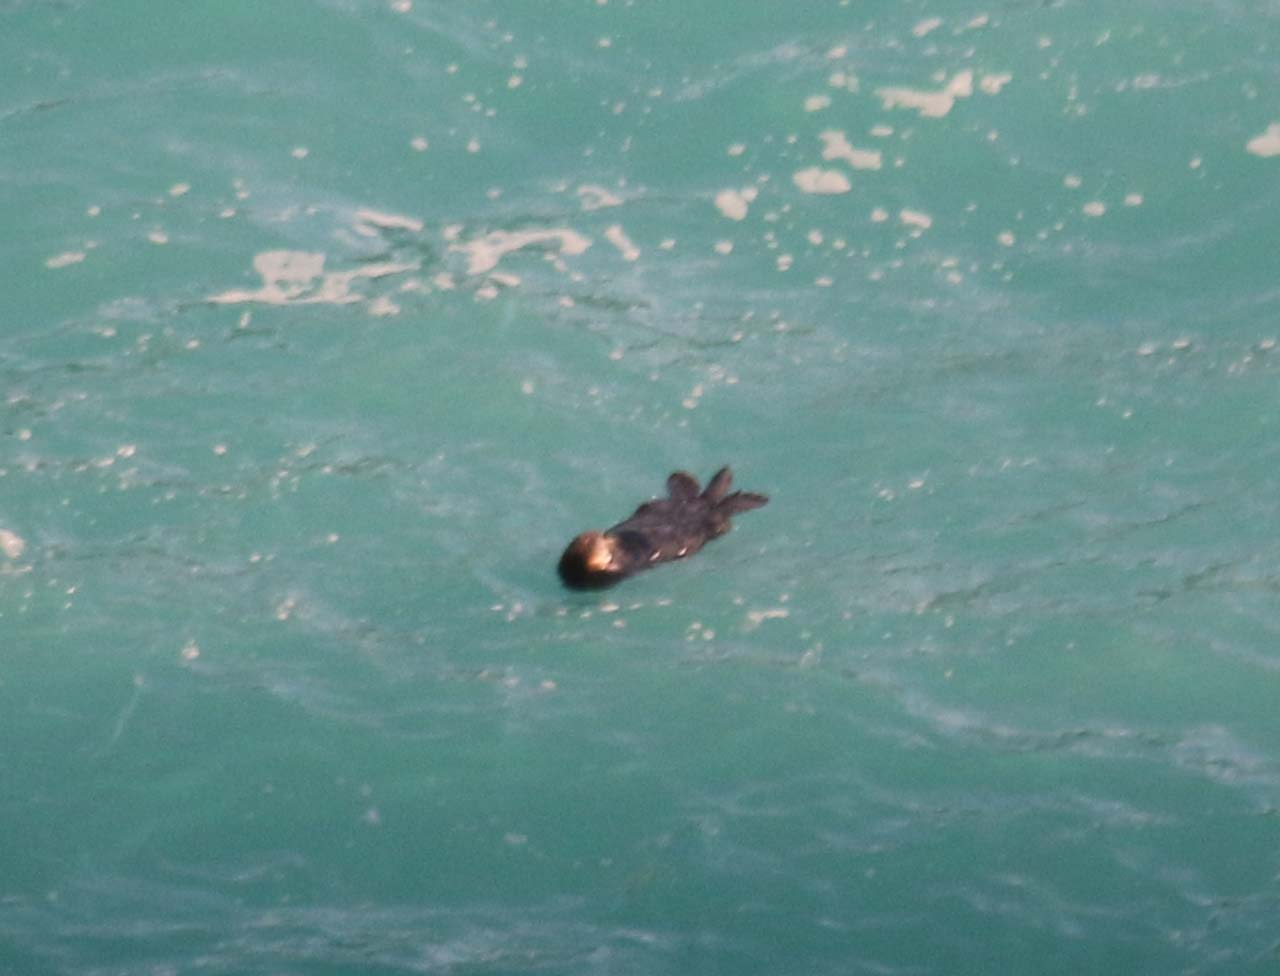 An unexpected surprise on our 2015 visit here was this sea otter (or sea lion?) doing a backstroke in McWay Cove